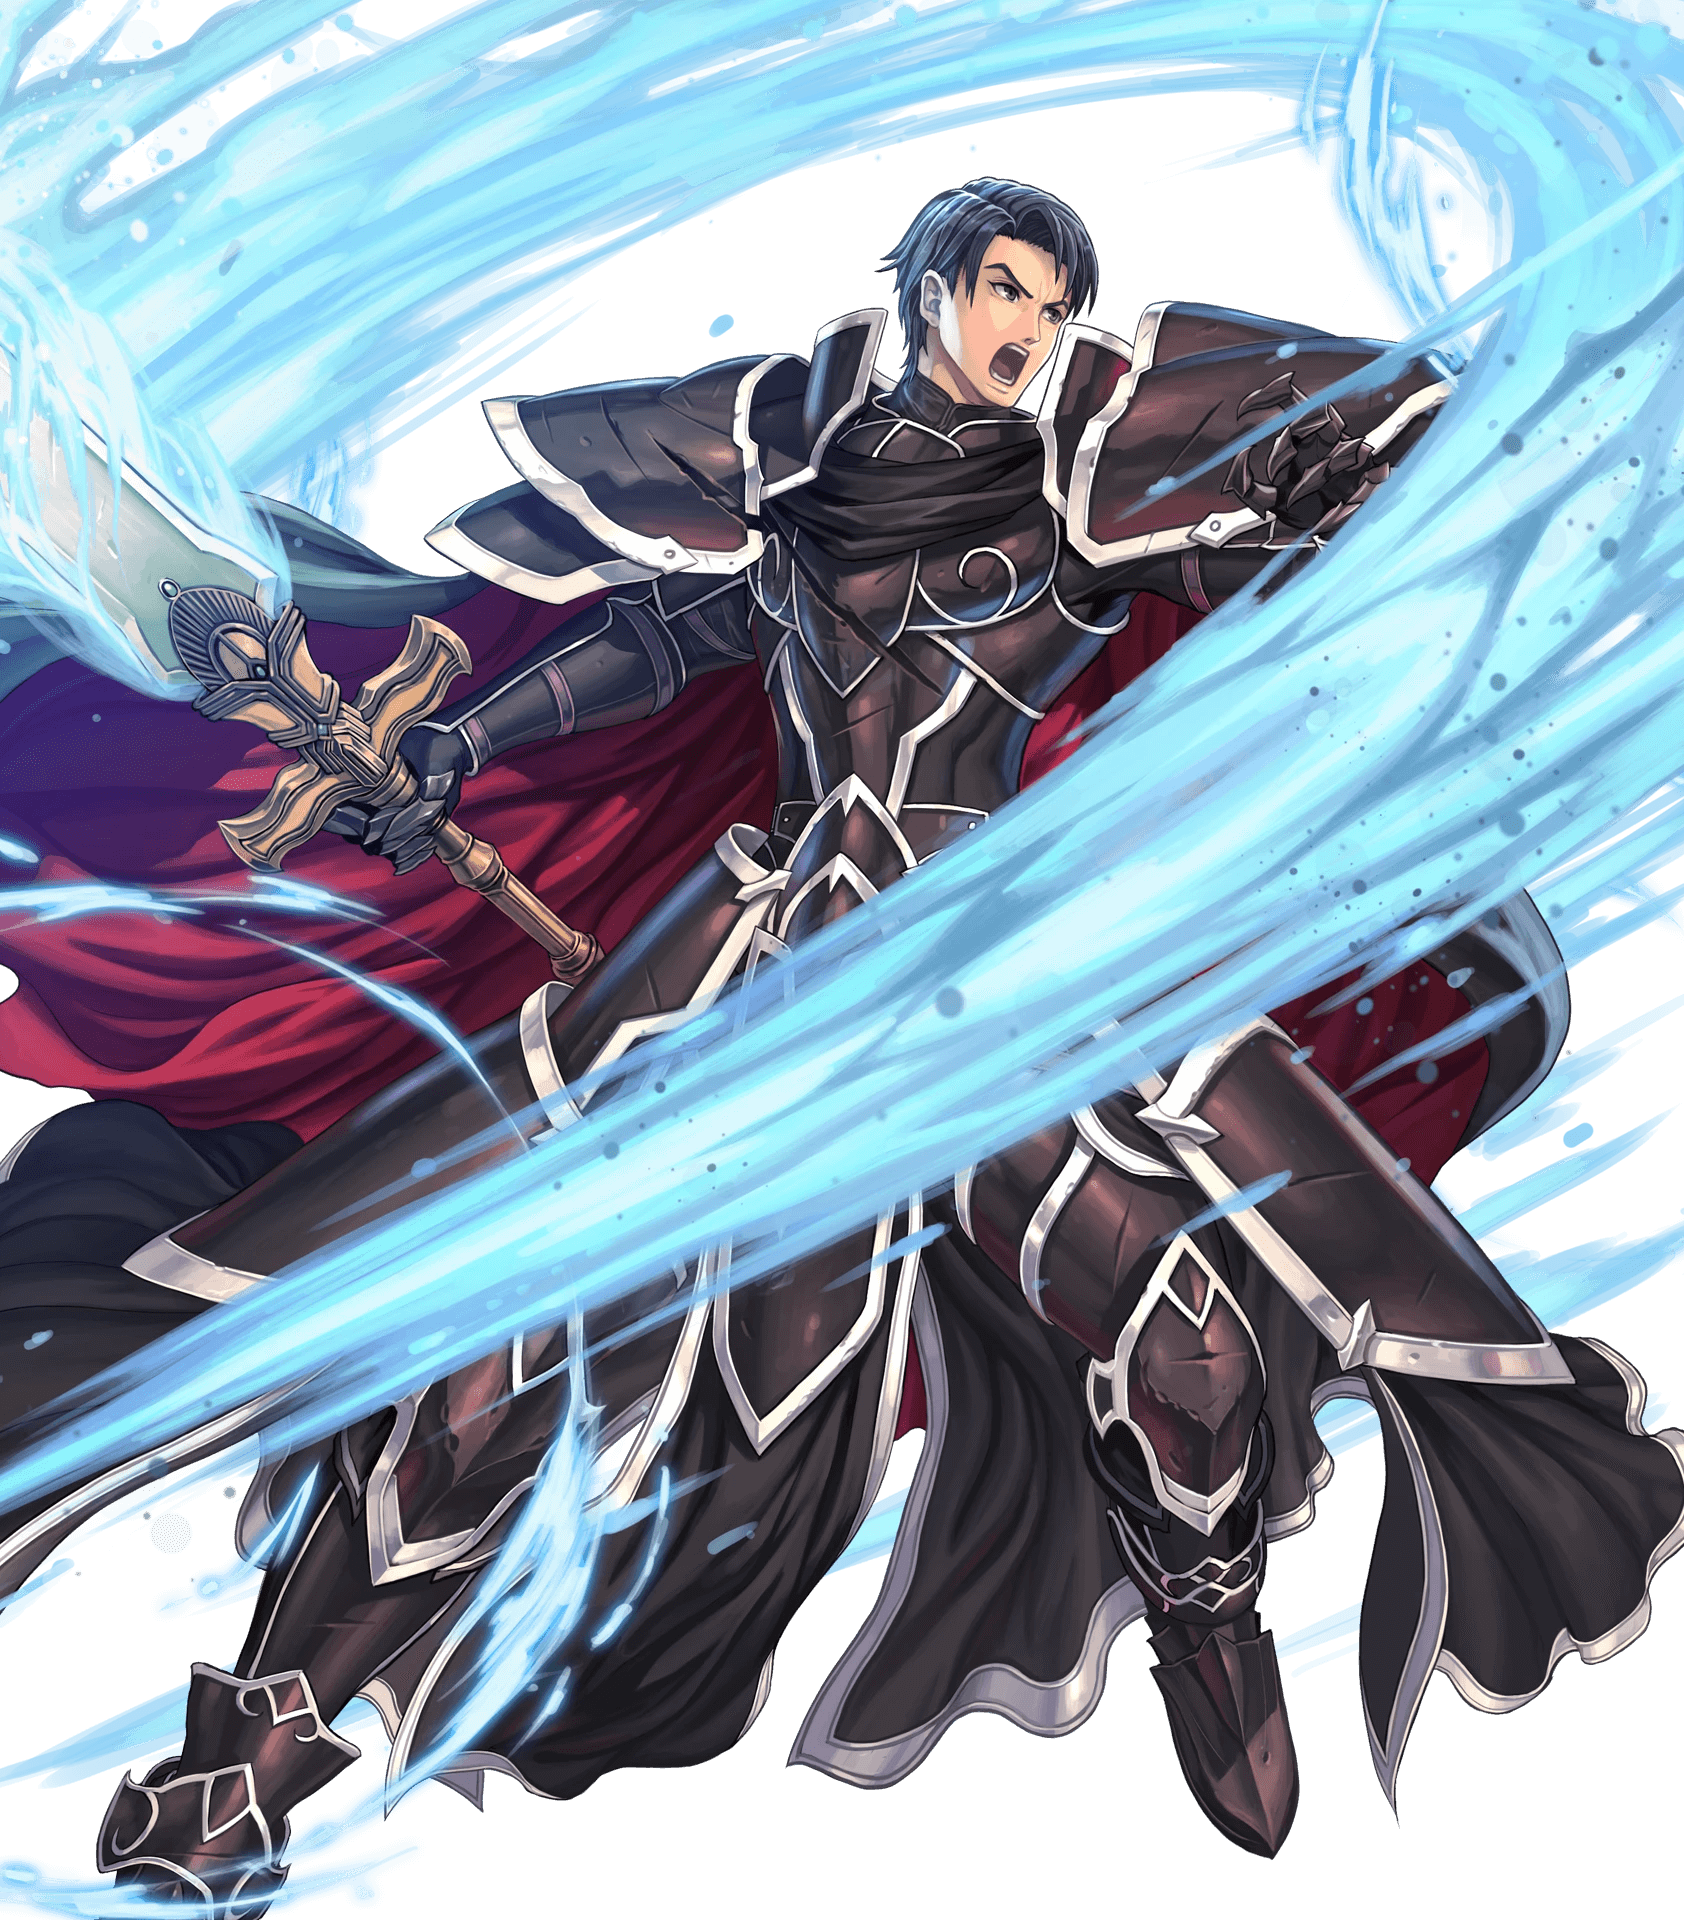 1boy armor black_knight fire_emblem fire_emblem:_akatsuki_no_megami fire_emblem_heroes full_body highres male_focus official_art short_hair solo spoilers transparent_background zelgius